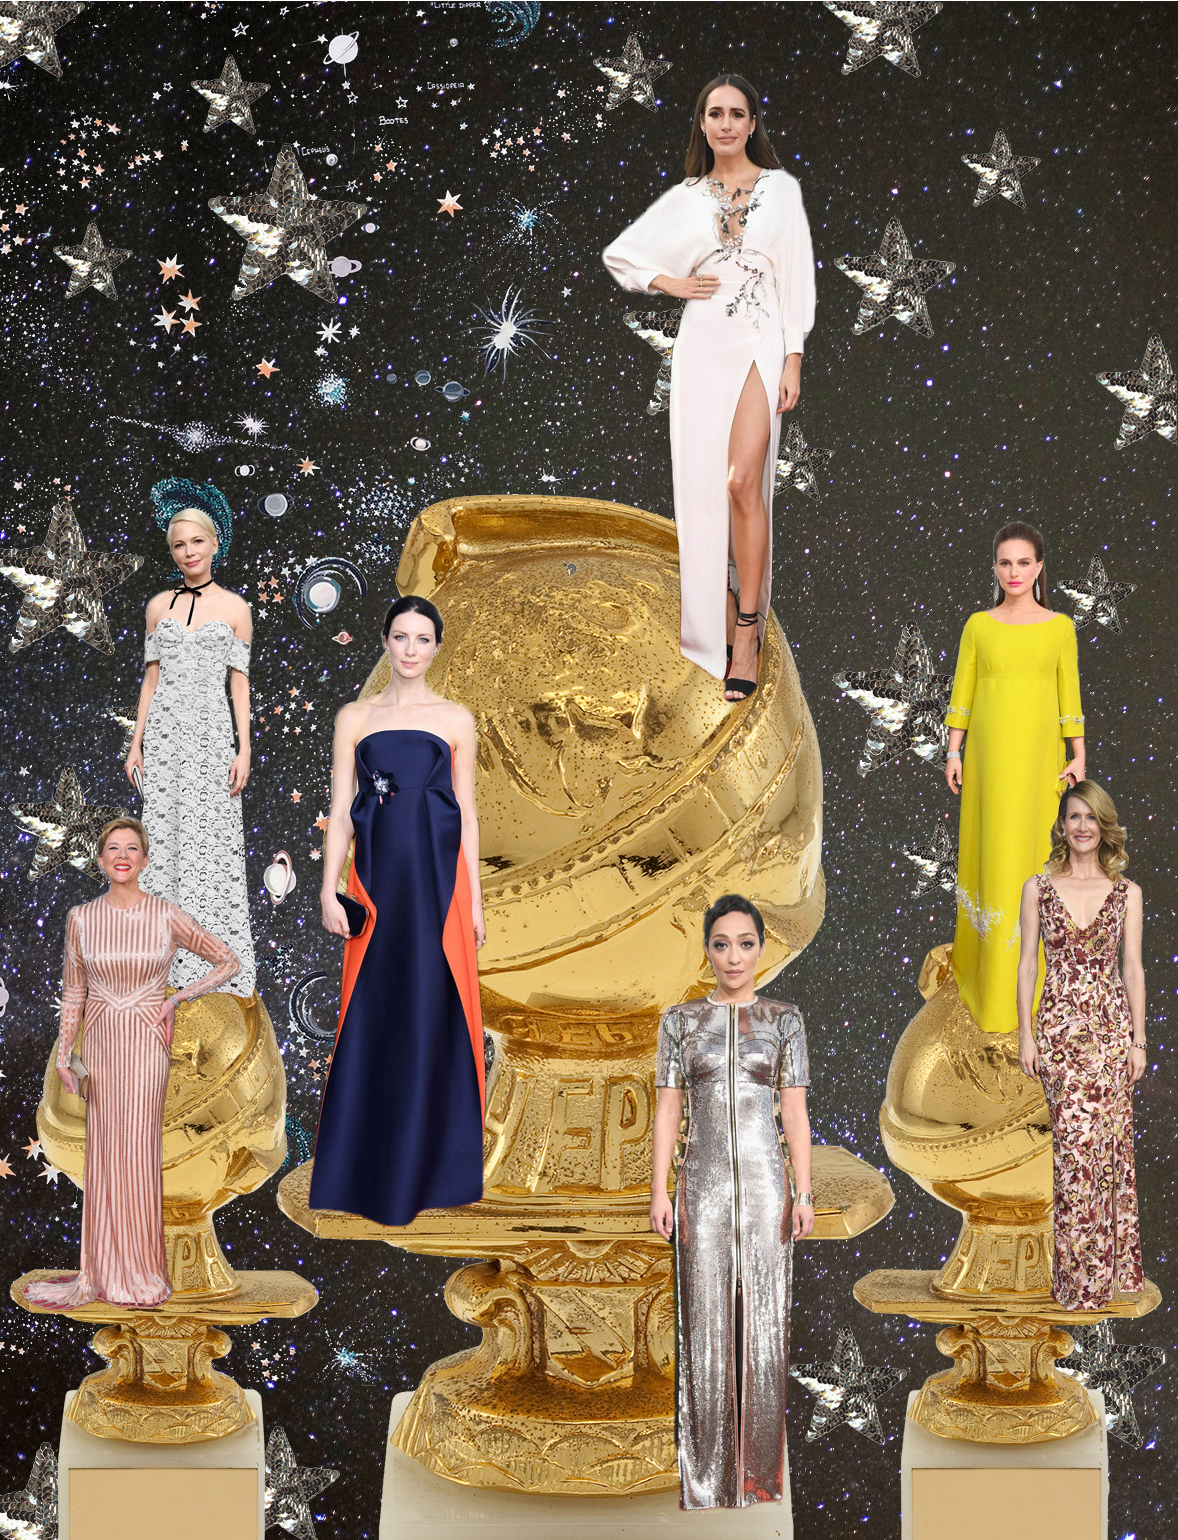 My Top three: Center and from literal top to bottom - Louise Roe in Monique Lhuillier,  Caitriona Balfe in Delpozo and Ruth Negga in Louis Vuitton. Satellite favorites - counter-clockwise from left: Michelle Williams in Louis Vuitton, Annette Benning in Pamela Roland, Laura Dern in Burberry, and Natalie Portman in Prada.